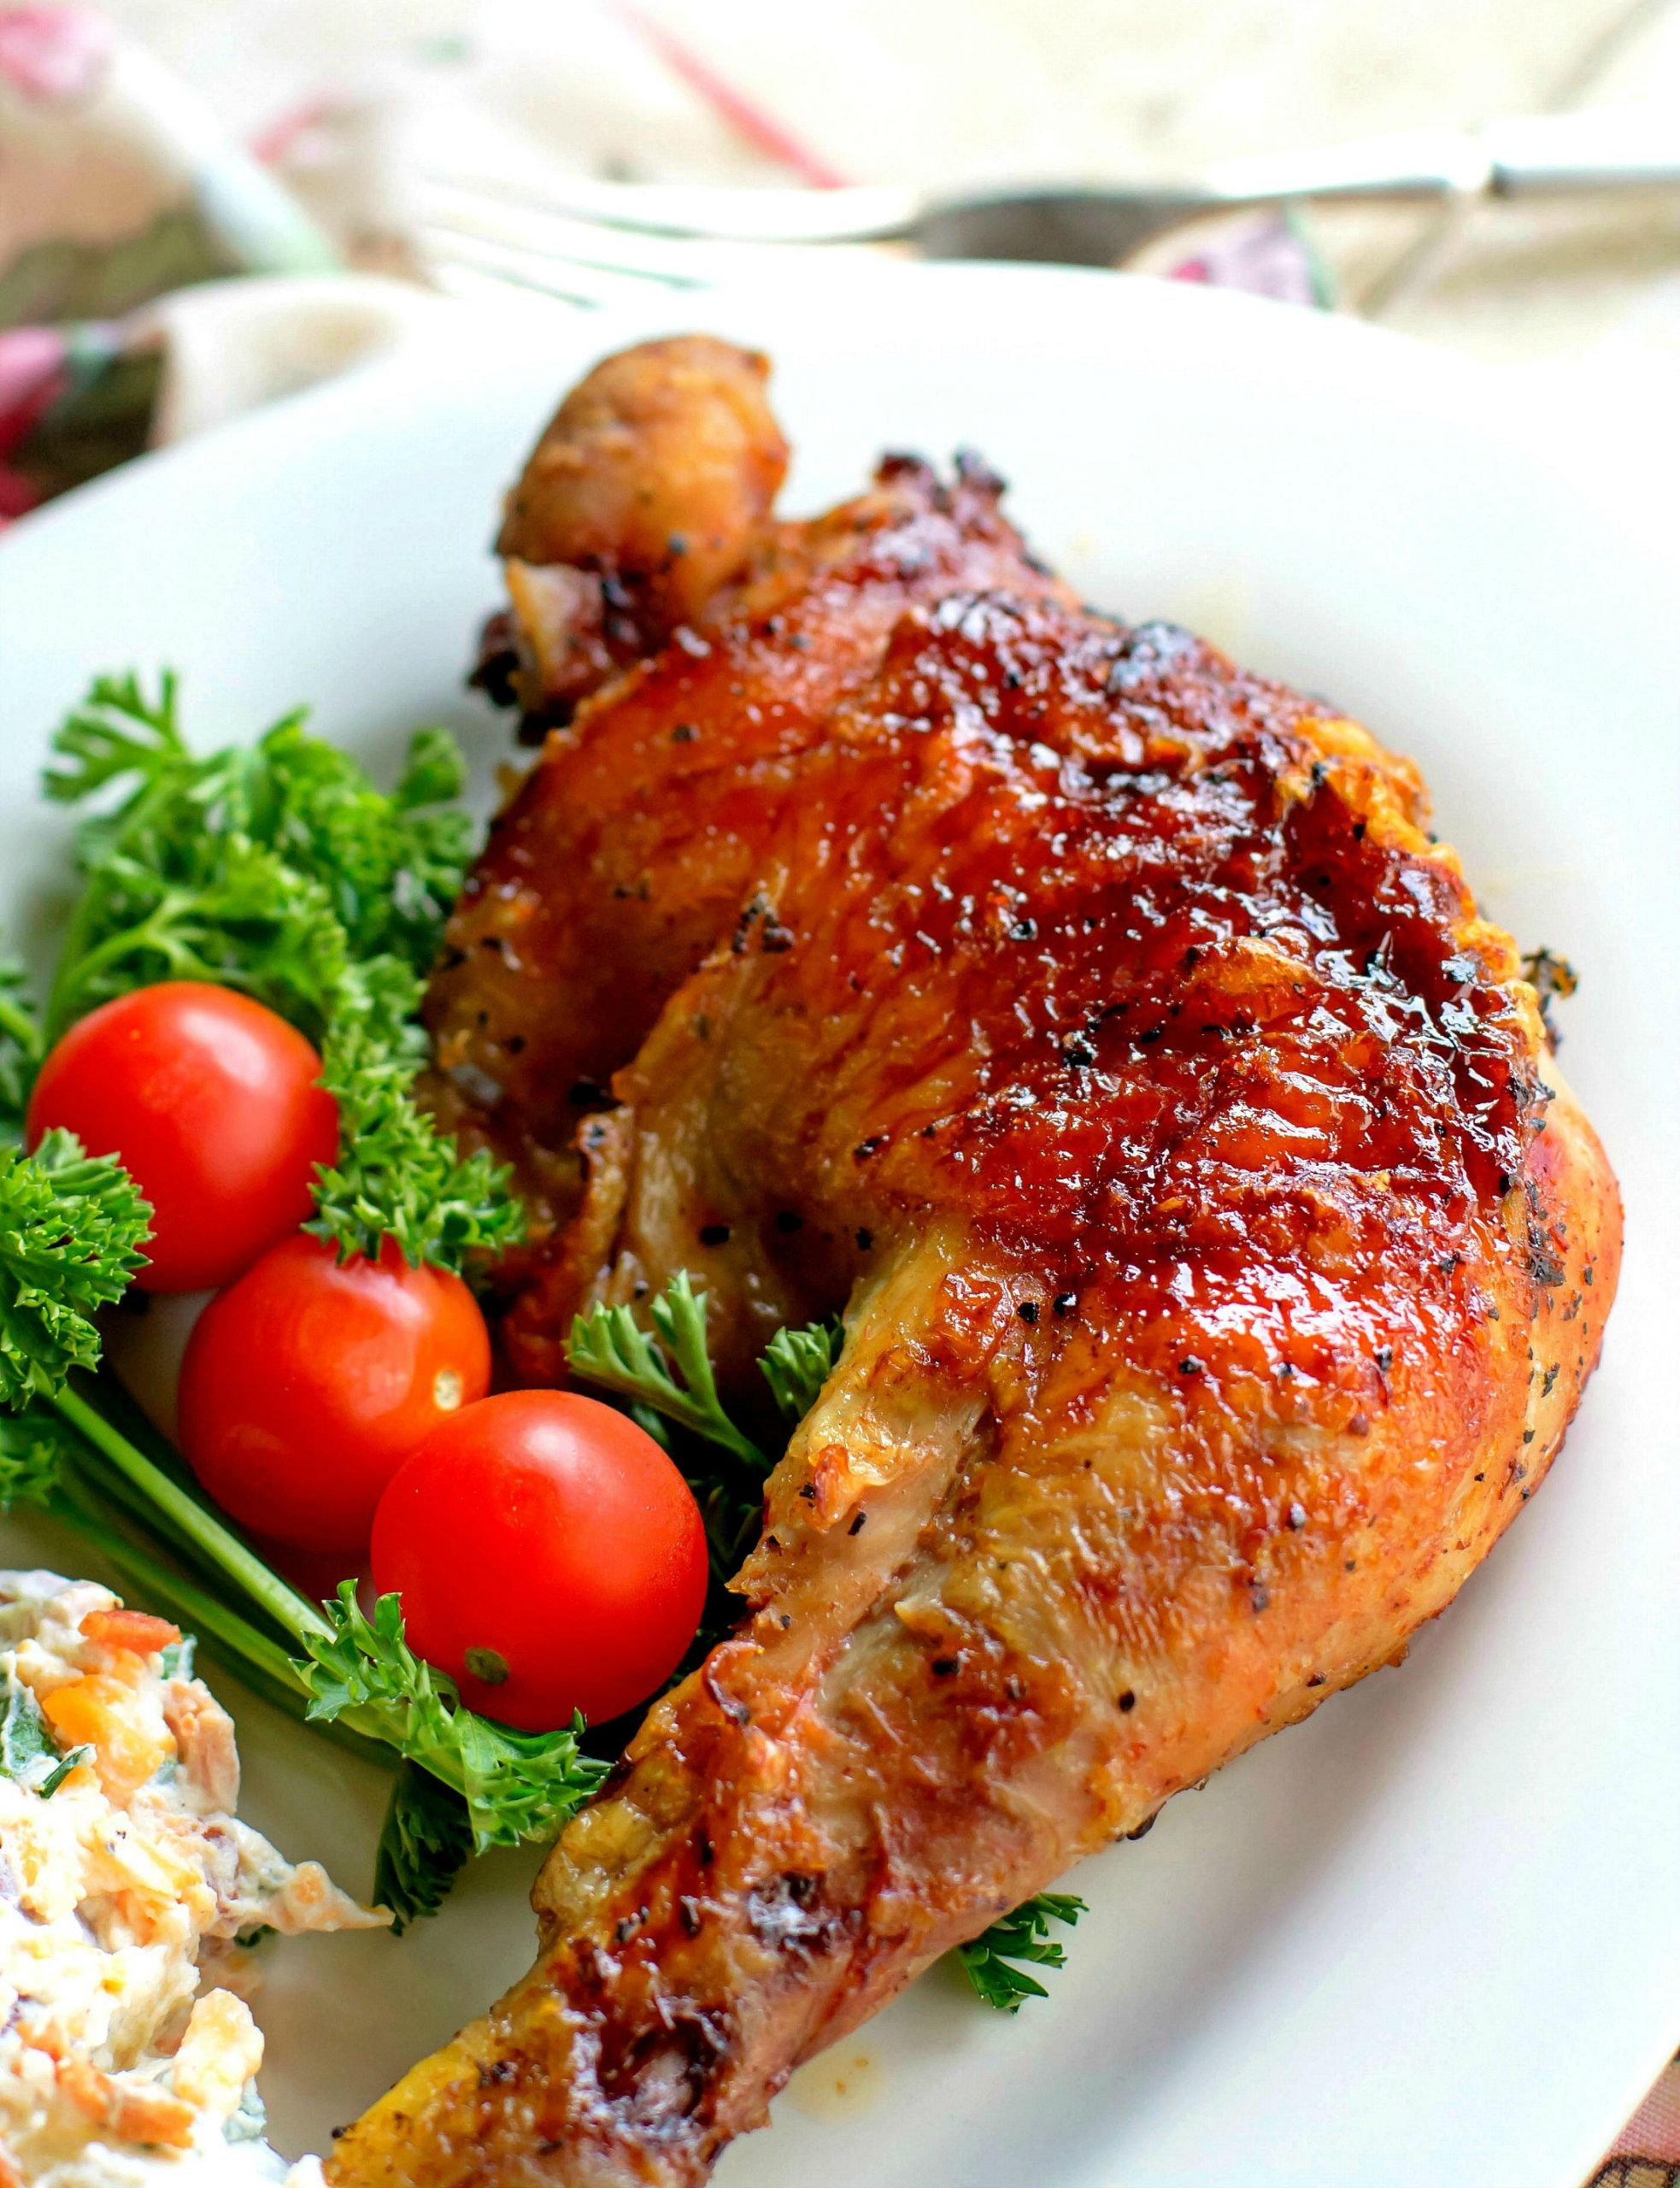 Barbecue Chicken Legs  Barbecued Chicken Leg Quarters Bunny s Warm Oven